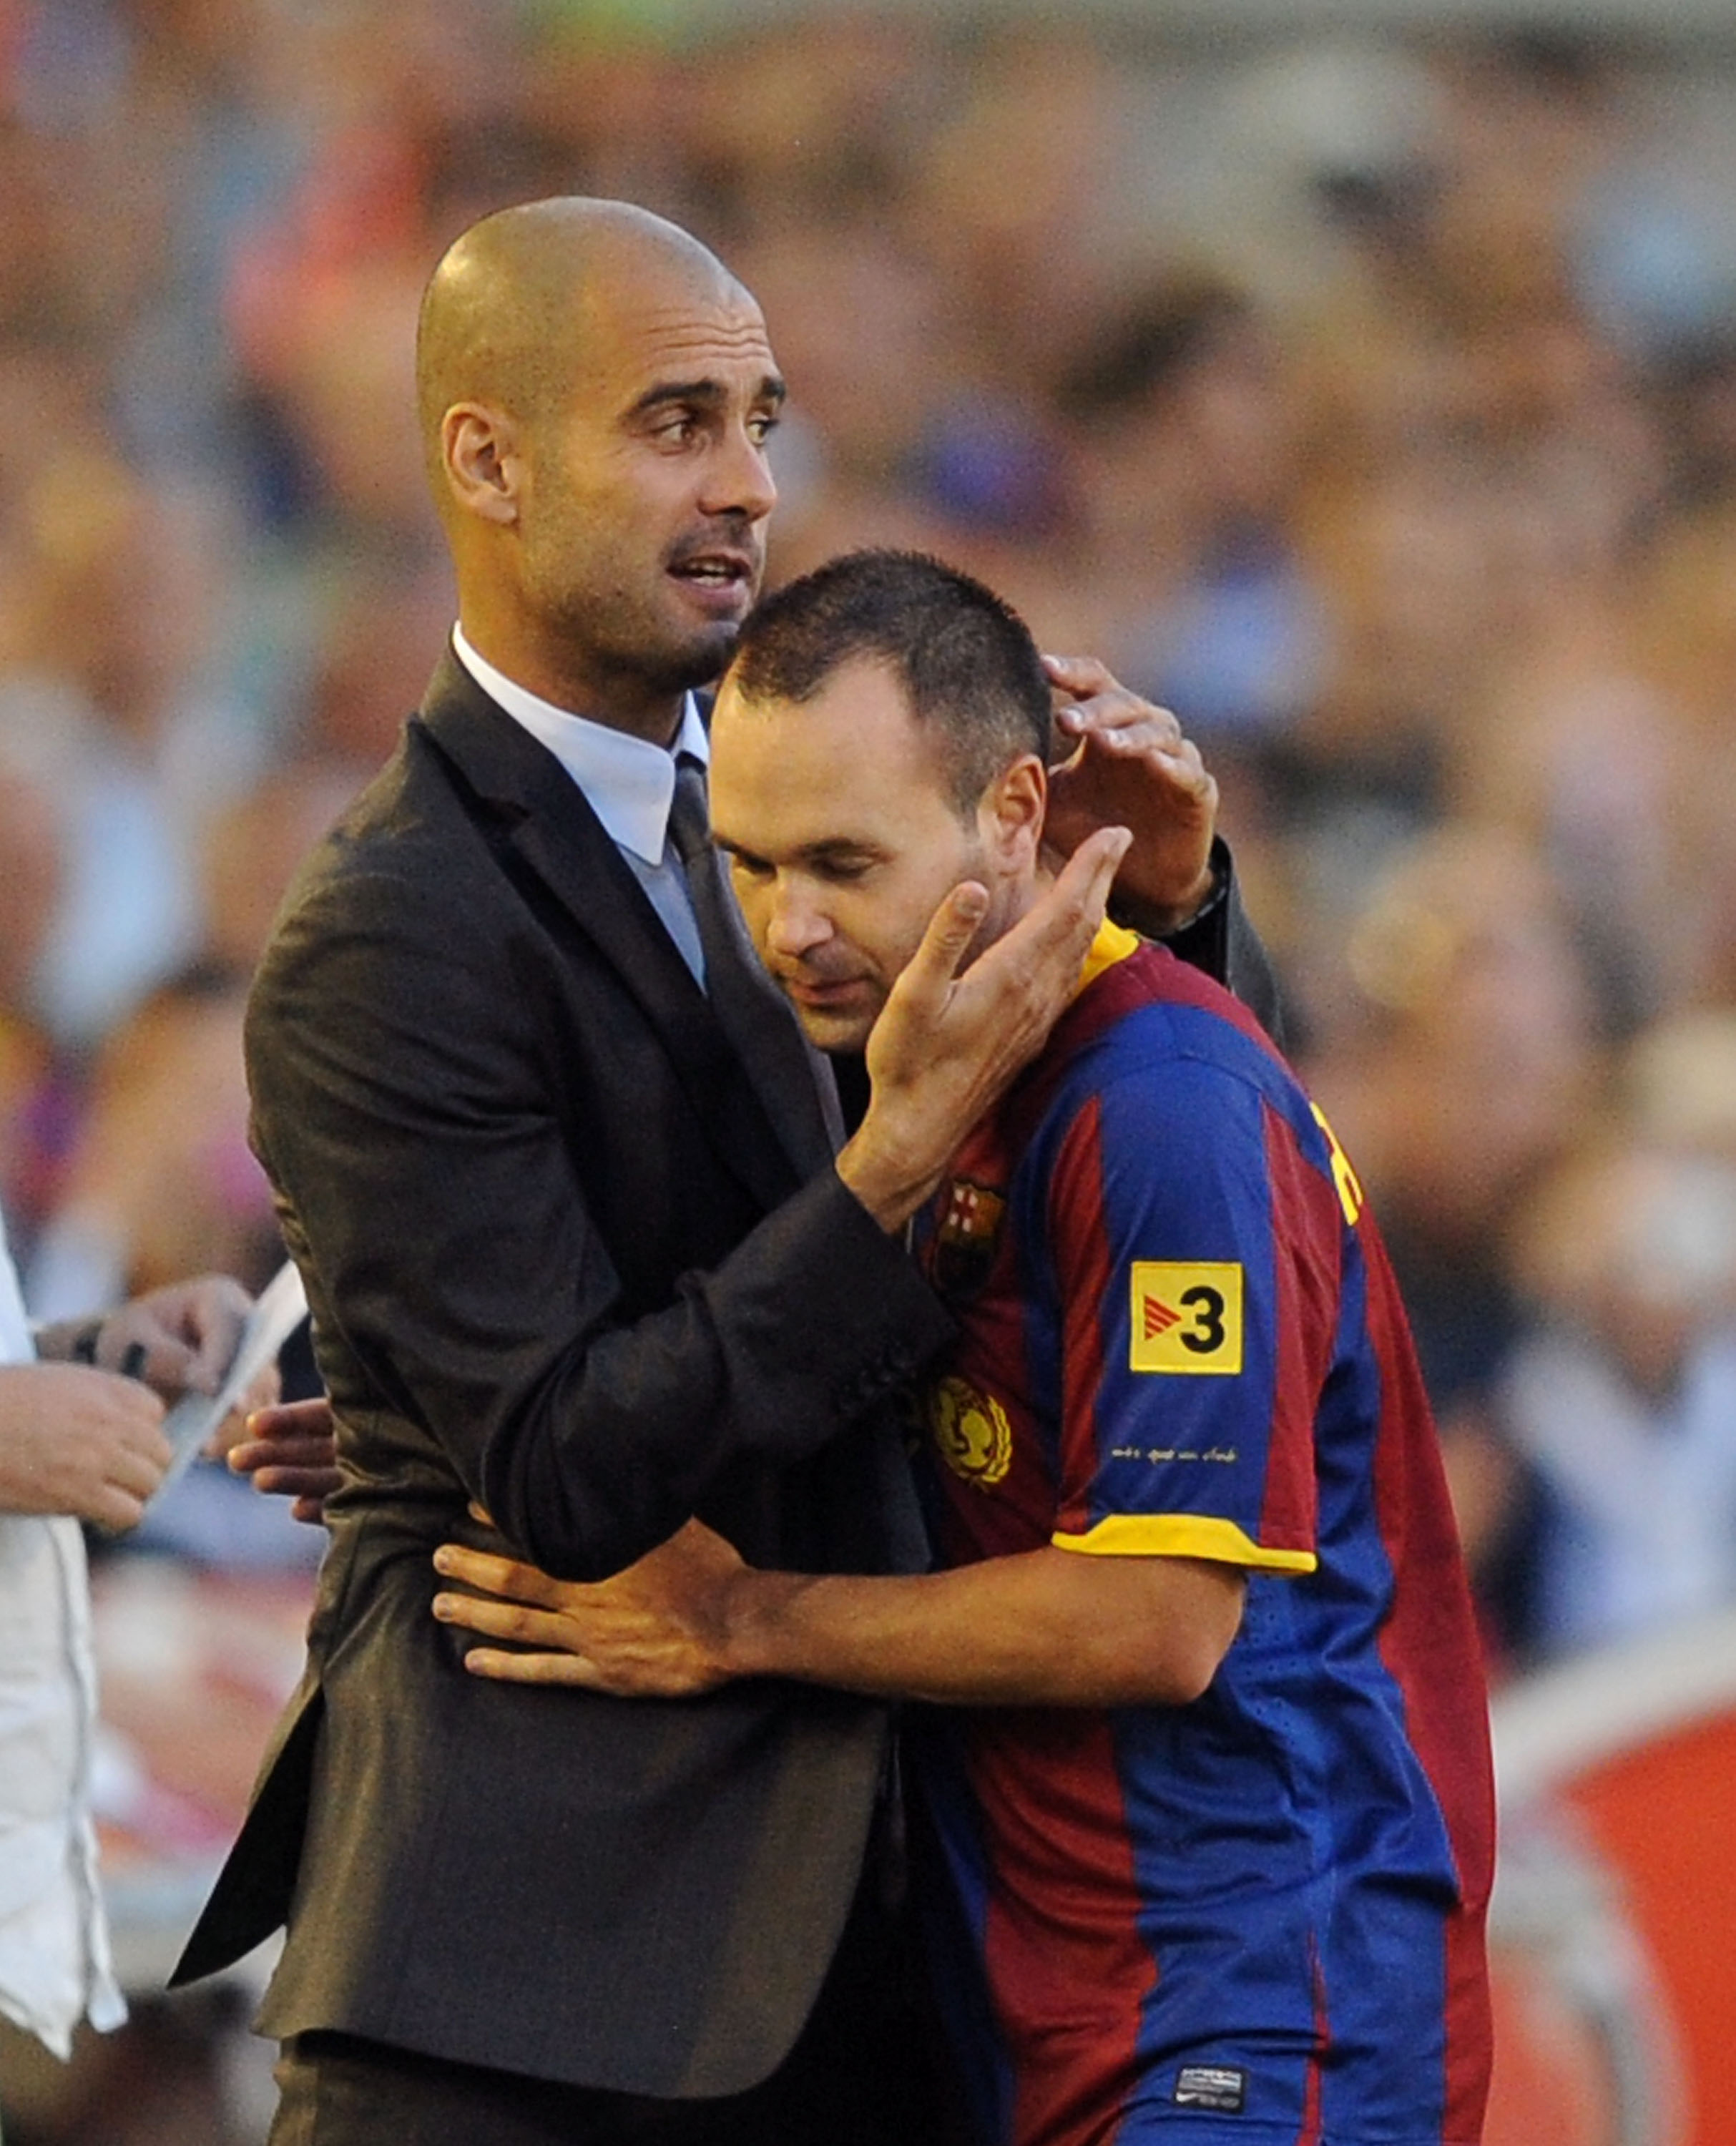 SANTANDER, SPAIN - AUGUST 29:  Barcelona manager Josep Guardiola (L) embraces Andres Iniesta after he was substituted during the La Liga match between Racing Santander and Barcelona at El Sardinero stadium on August 29, 2010 in Santander, Spain.  (Photo b